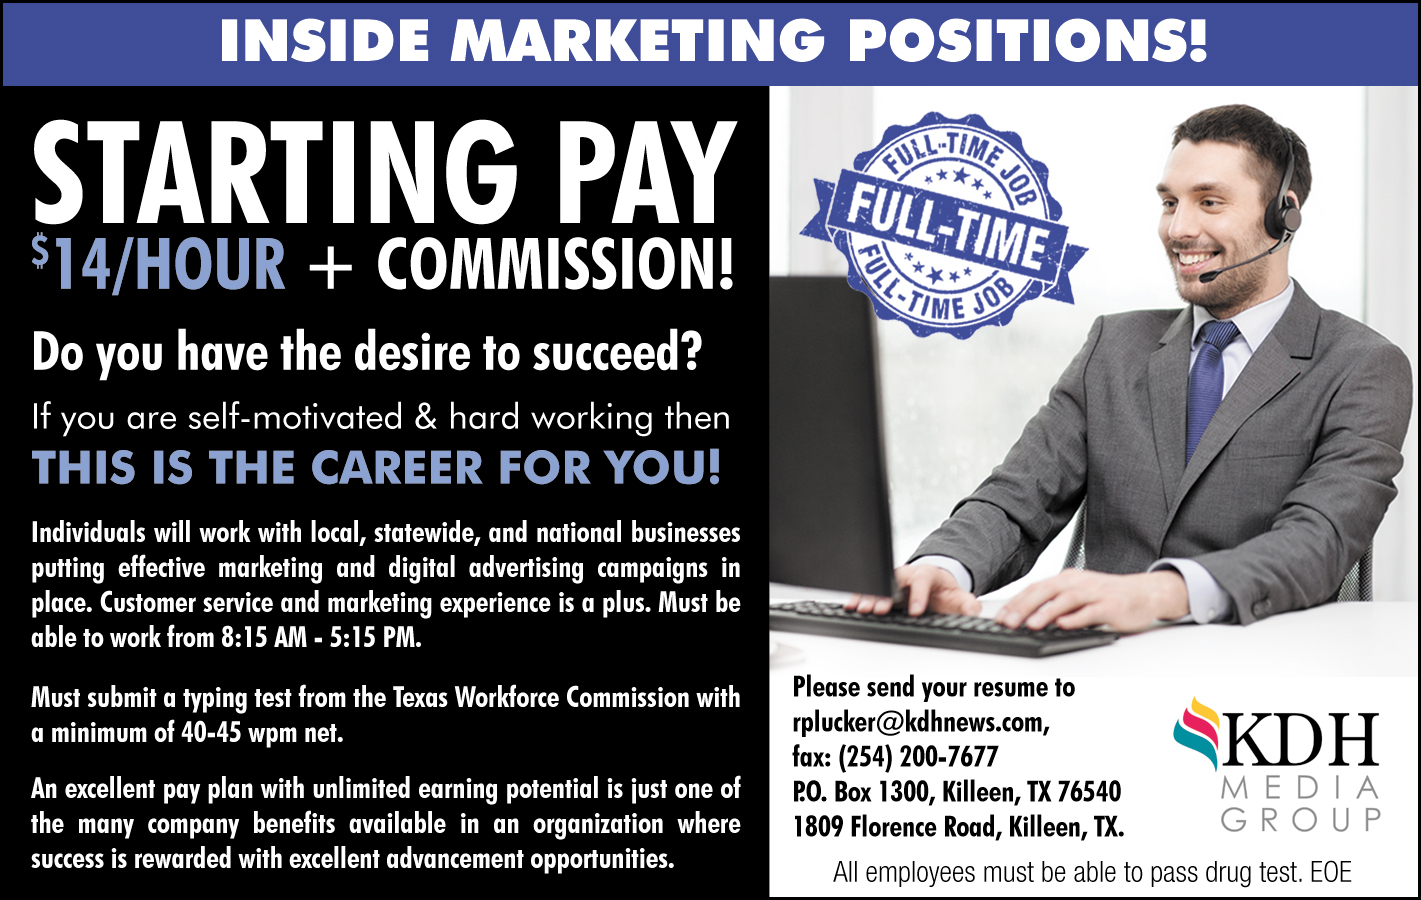 Inside Marketing Positions!